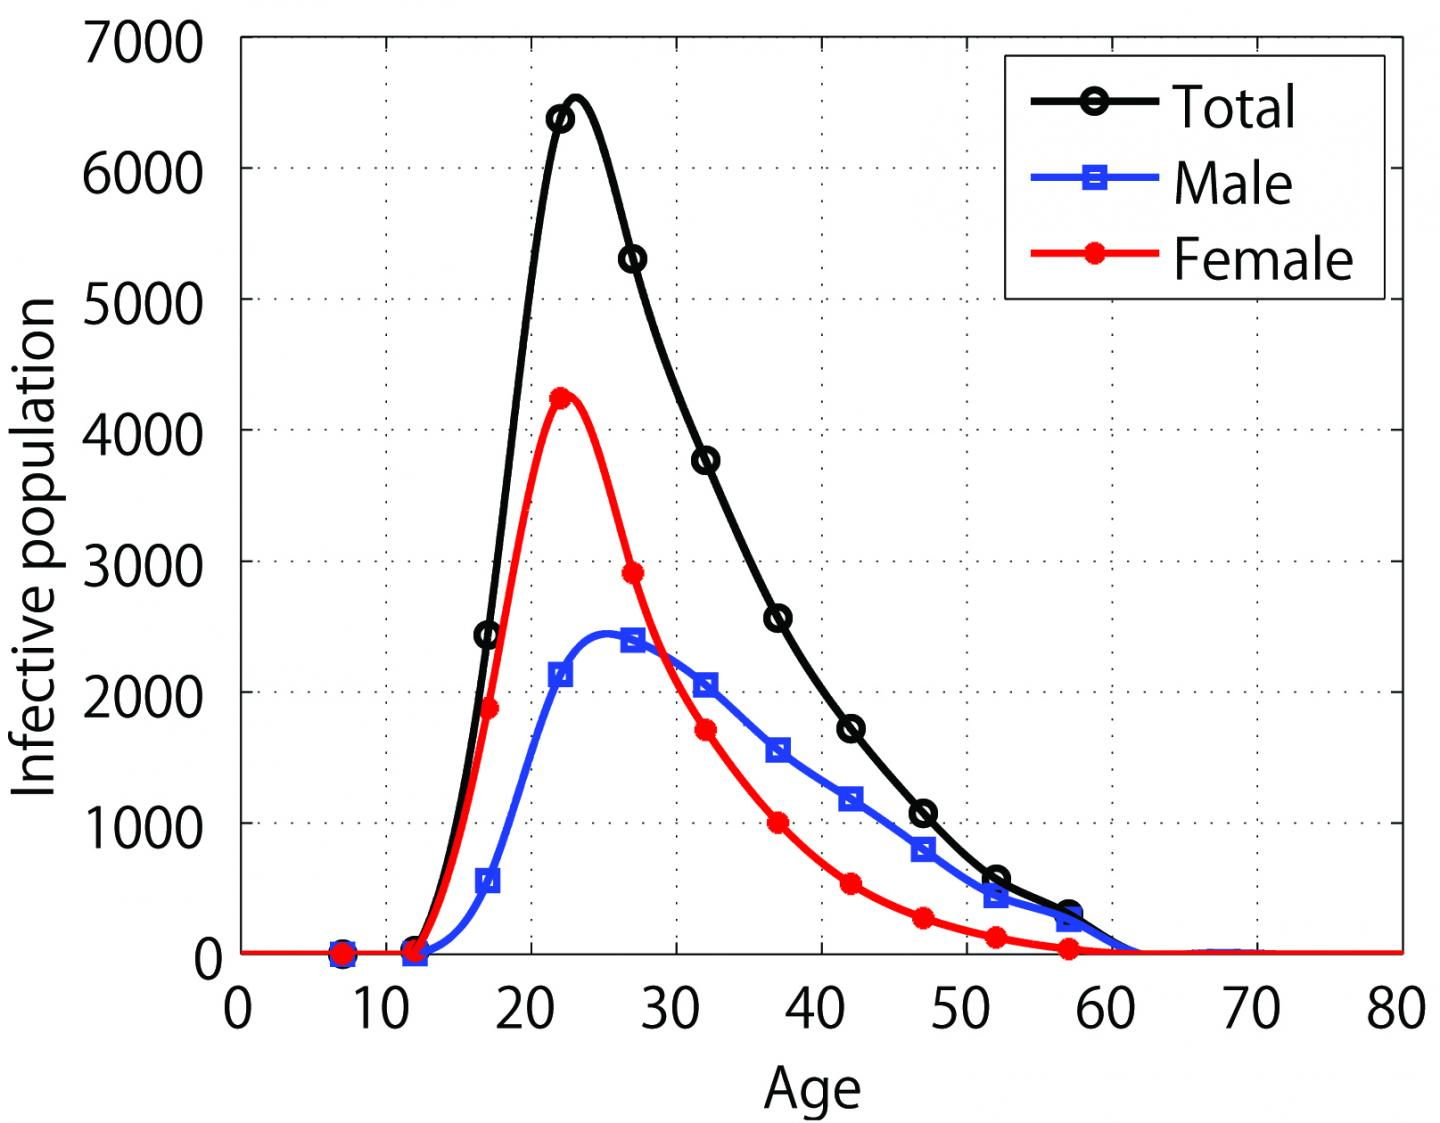 Graphical Representation of Chlamydia in Japan